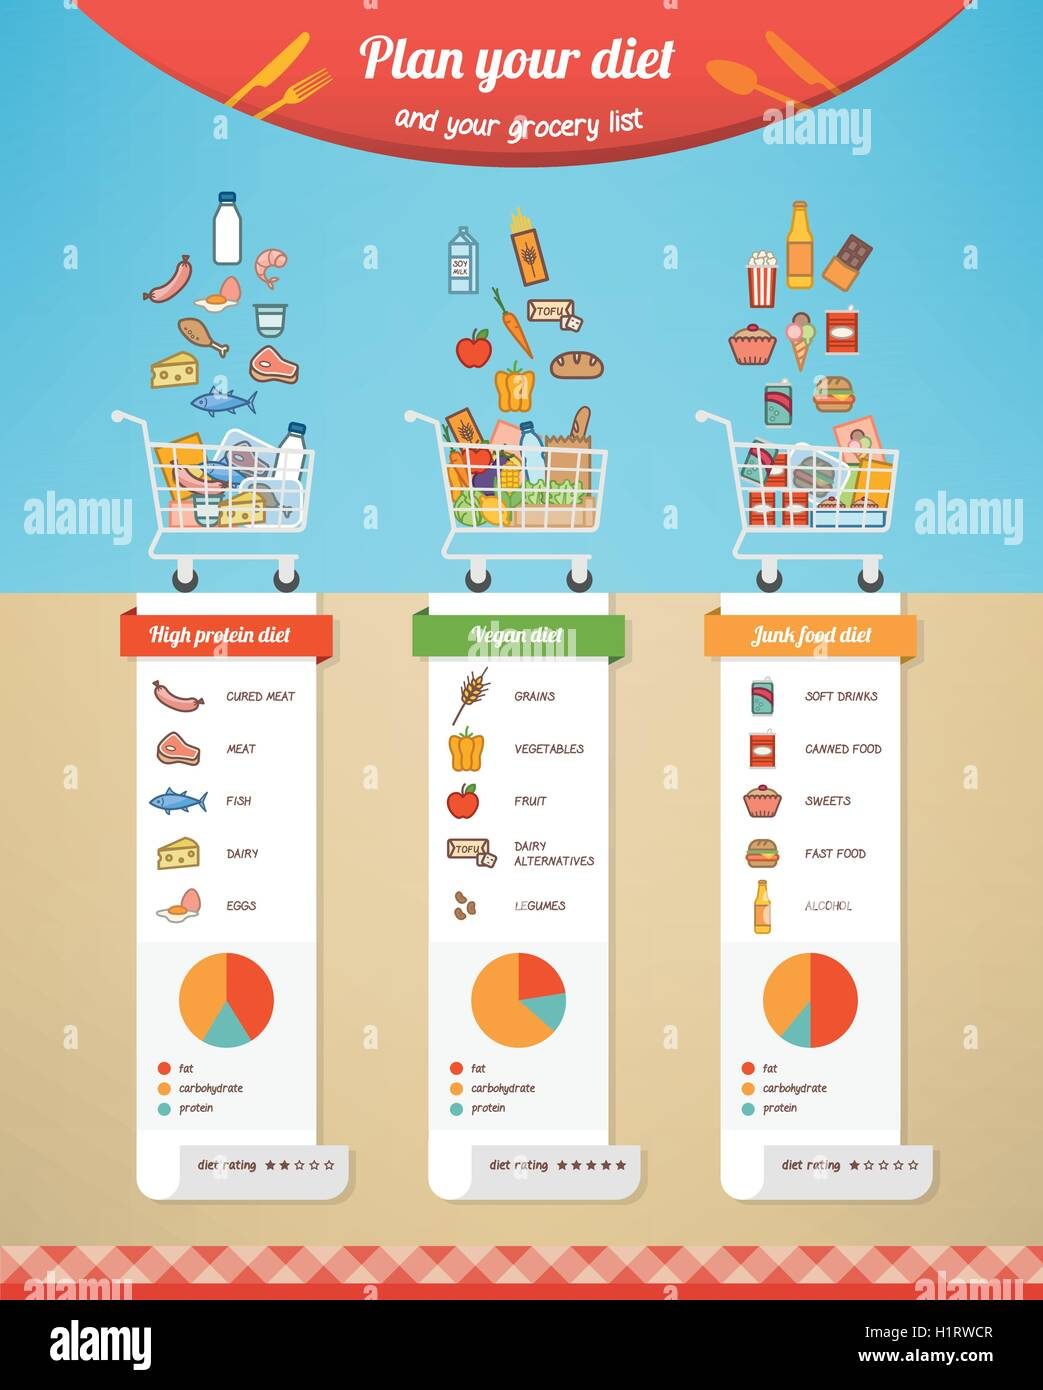 Diet plan comparison infographic with grocery list, nutrition facts and food icons - Stock Vector